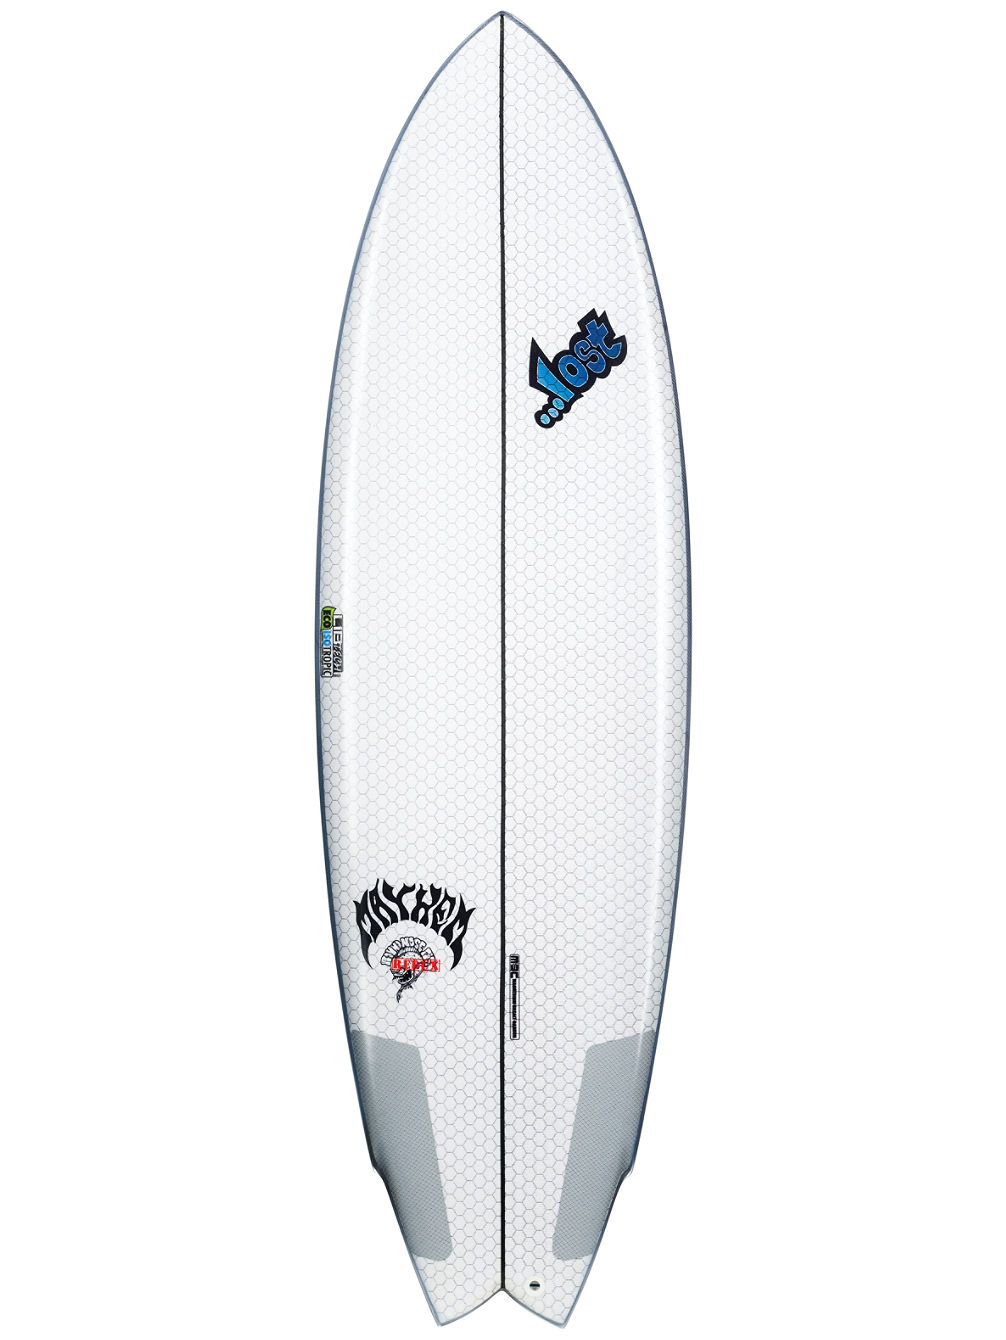 Lib X Lost Round Nose Fish 5.8 Surfboard